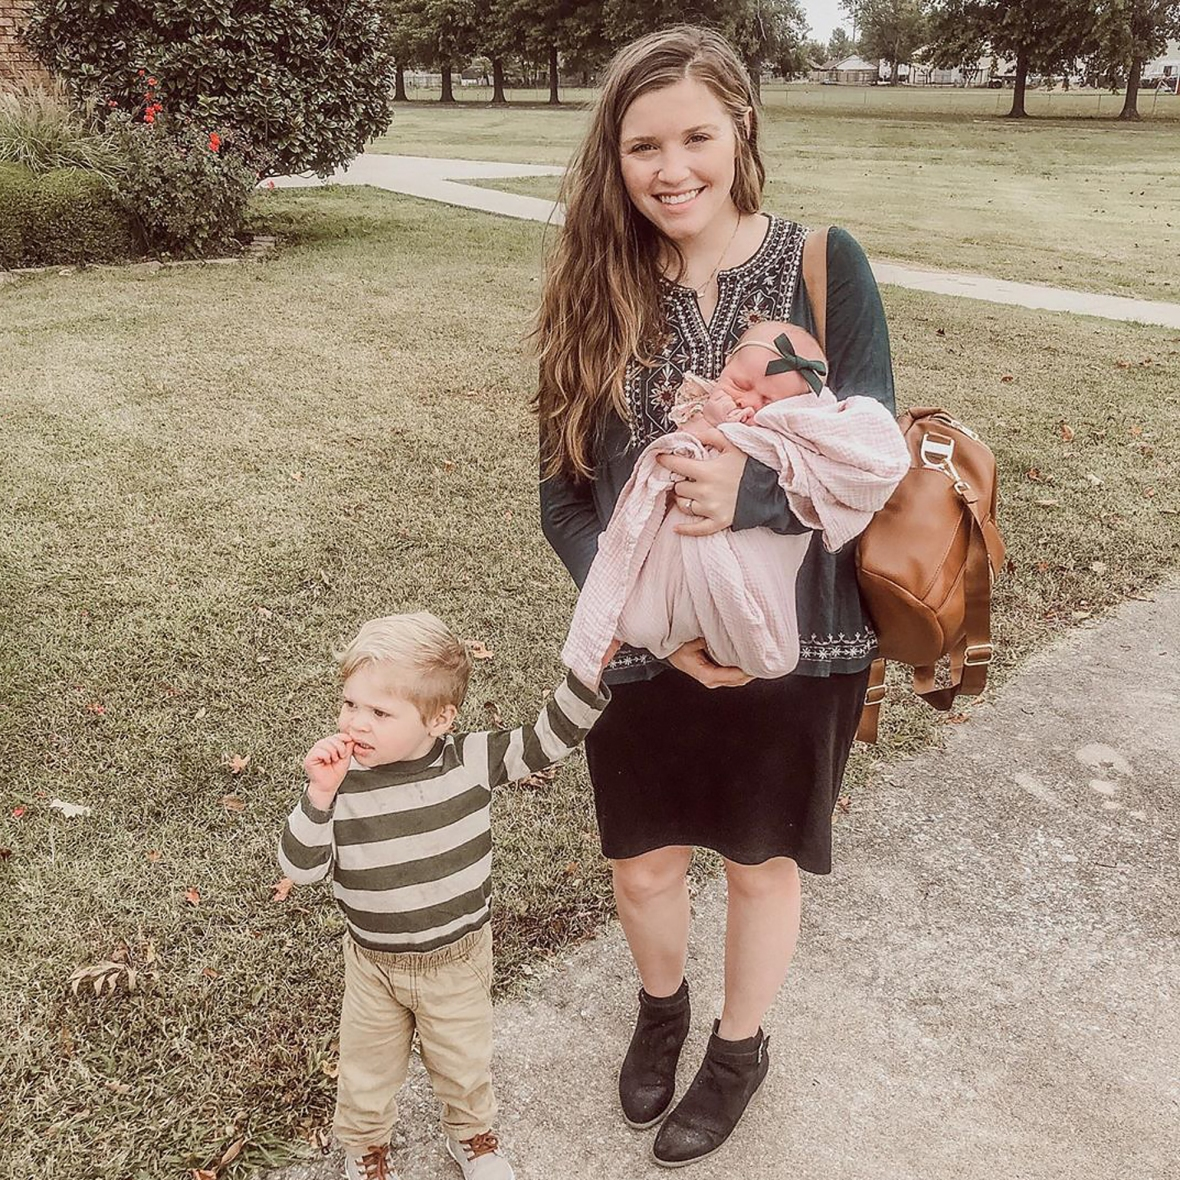 Joy-Anna Duggar Responds to 'Concerned' Fan After Sharing New Photo With Baby Girl: 'I Wasn't About to Drop Her'